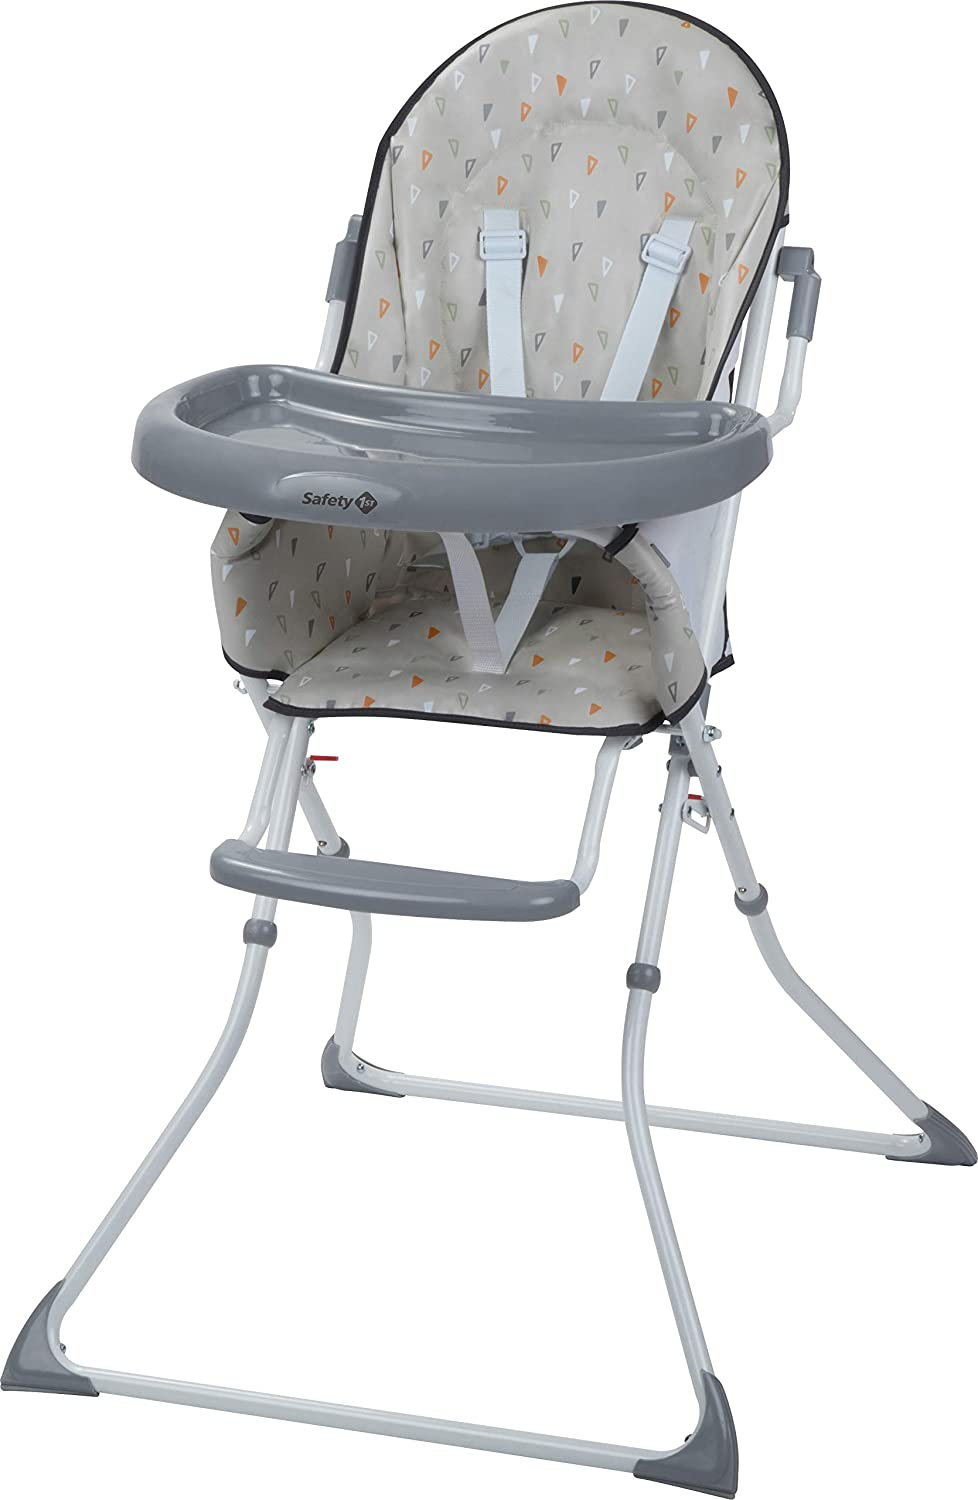 Safety 1st Chaise Haute Kanji Grey Patches DORA3 27739495